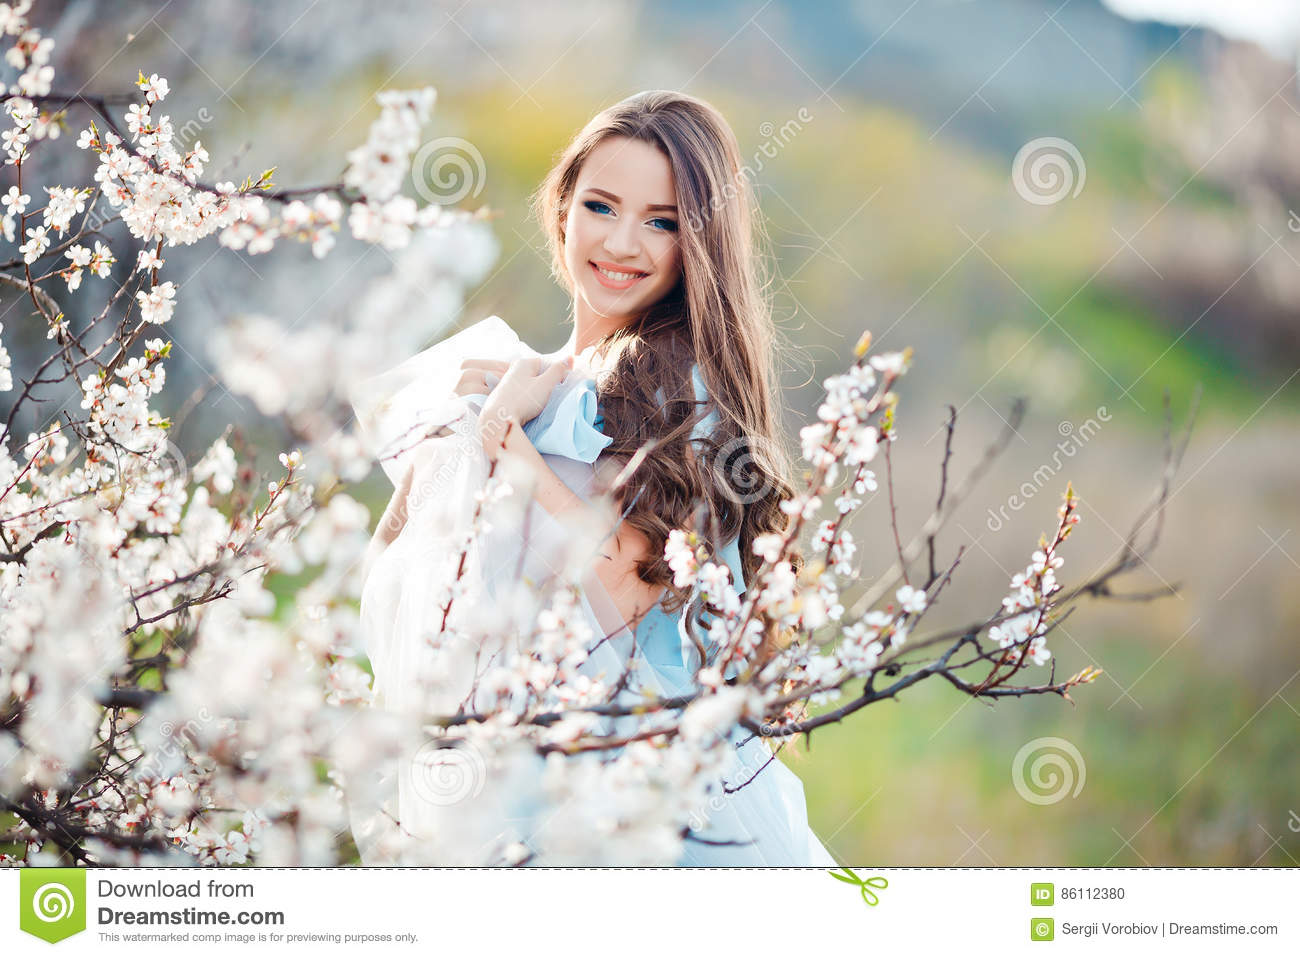 Spring touch. Happy beautiful young smiling woman in blue dress enjoy fresh  flowers and sun light in blossom park at sunset ac9fcf40a